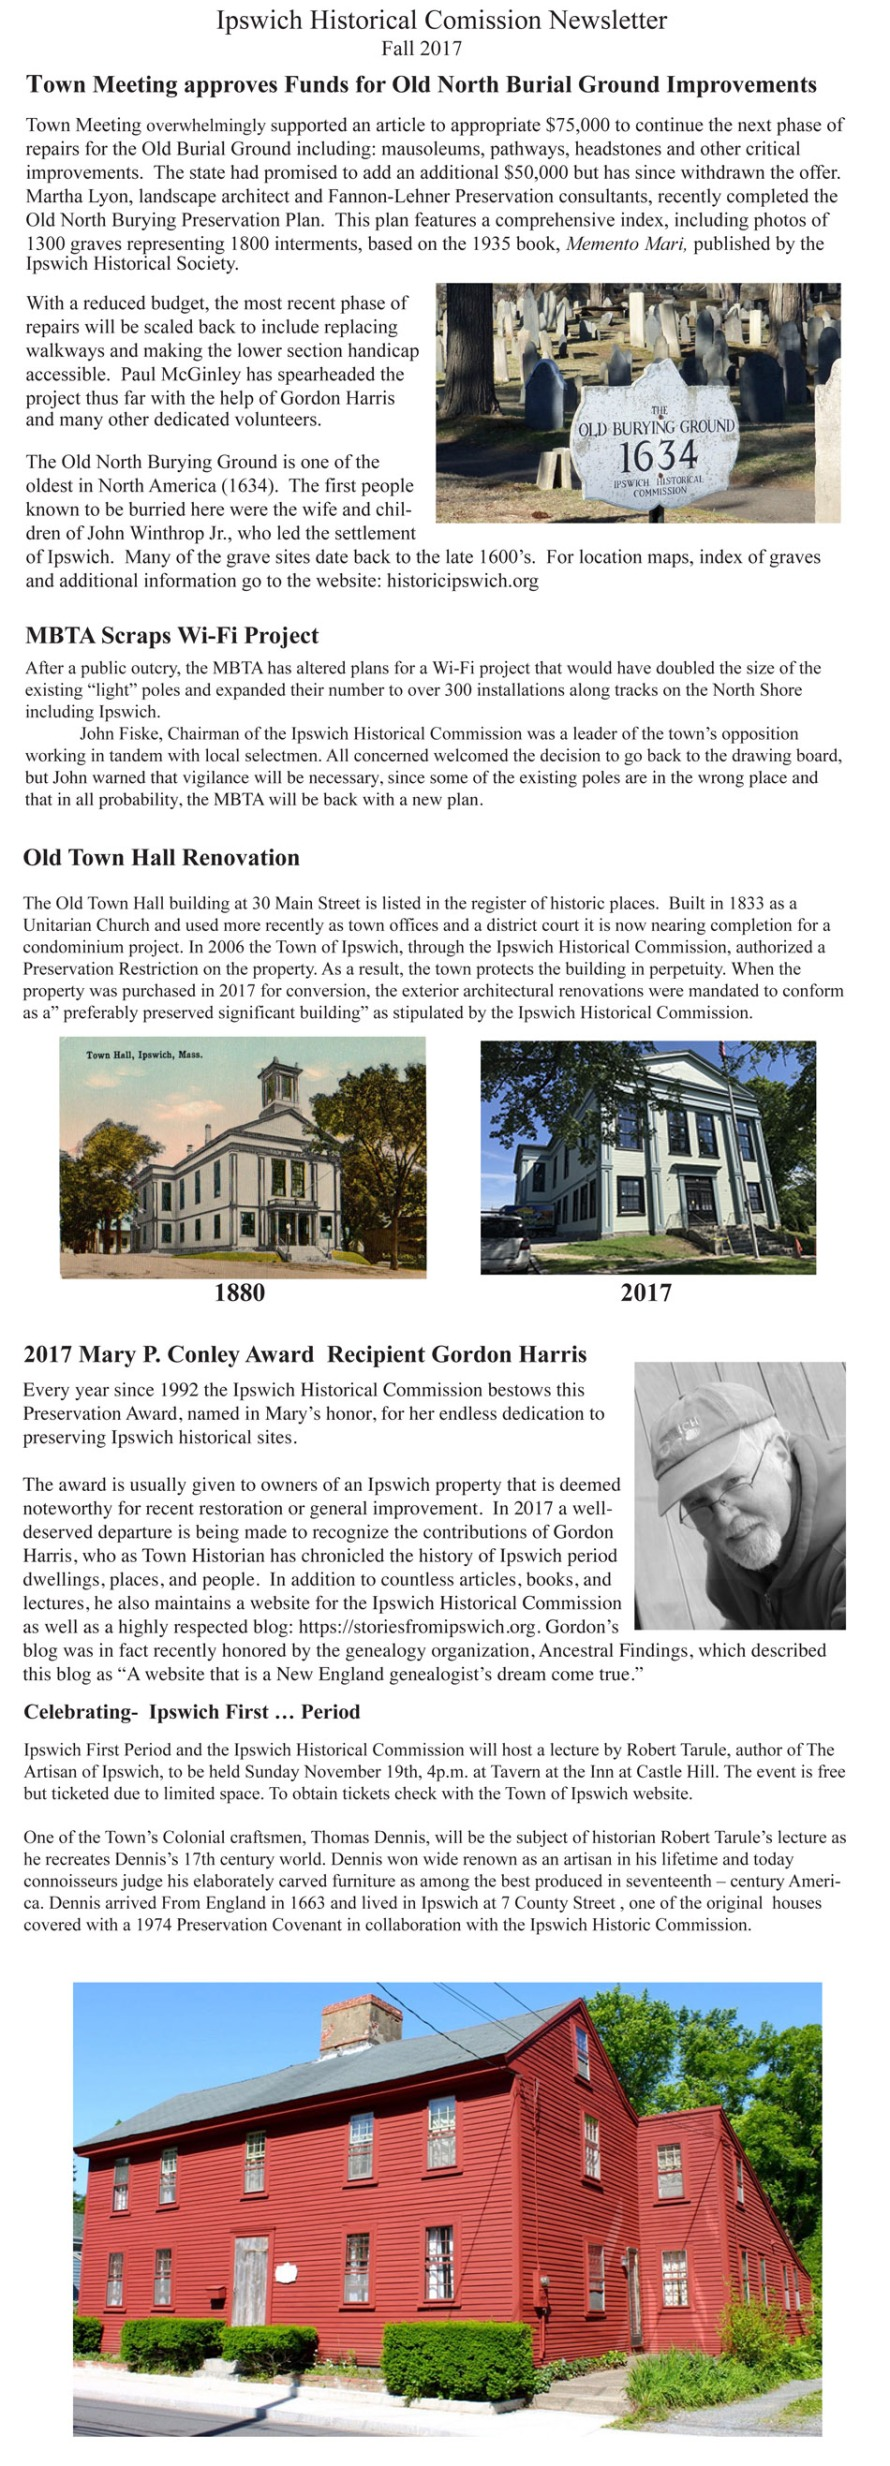 Ipswich Historical Commission newsletter fall 2017